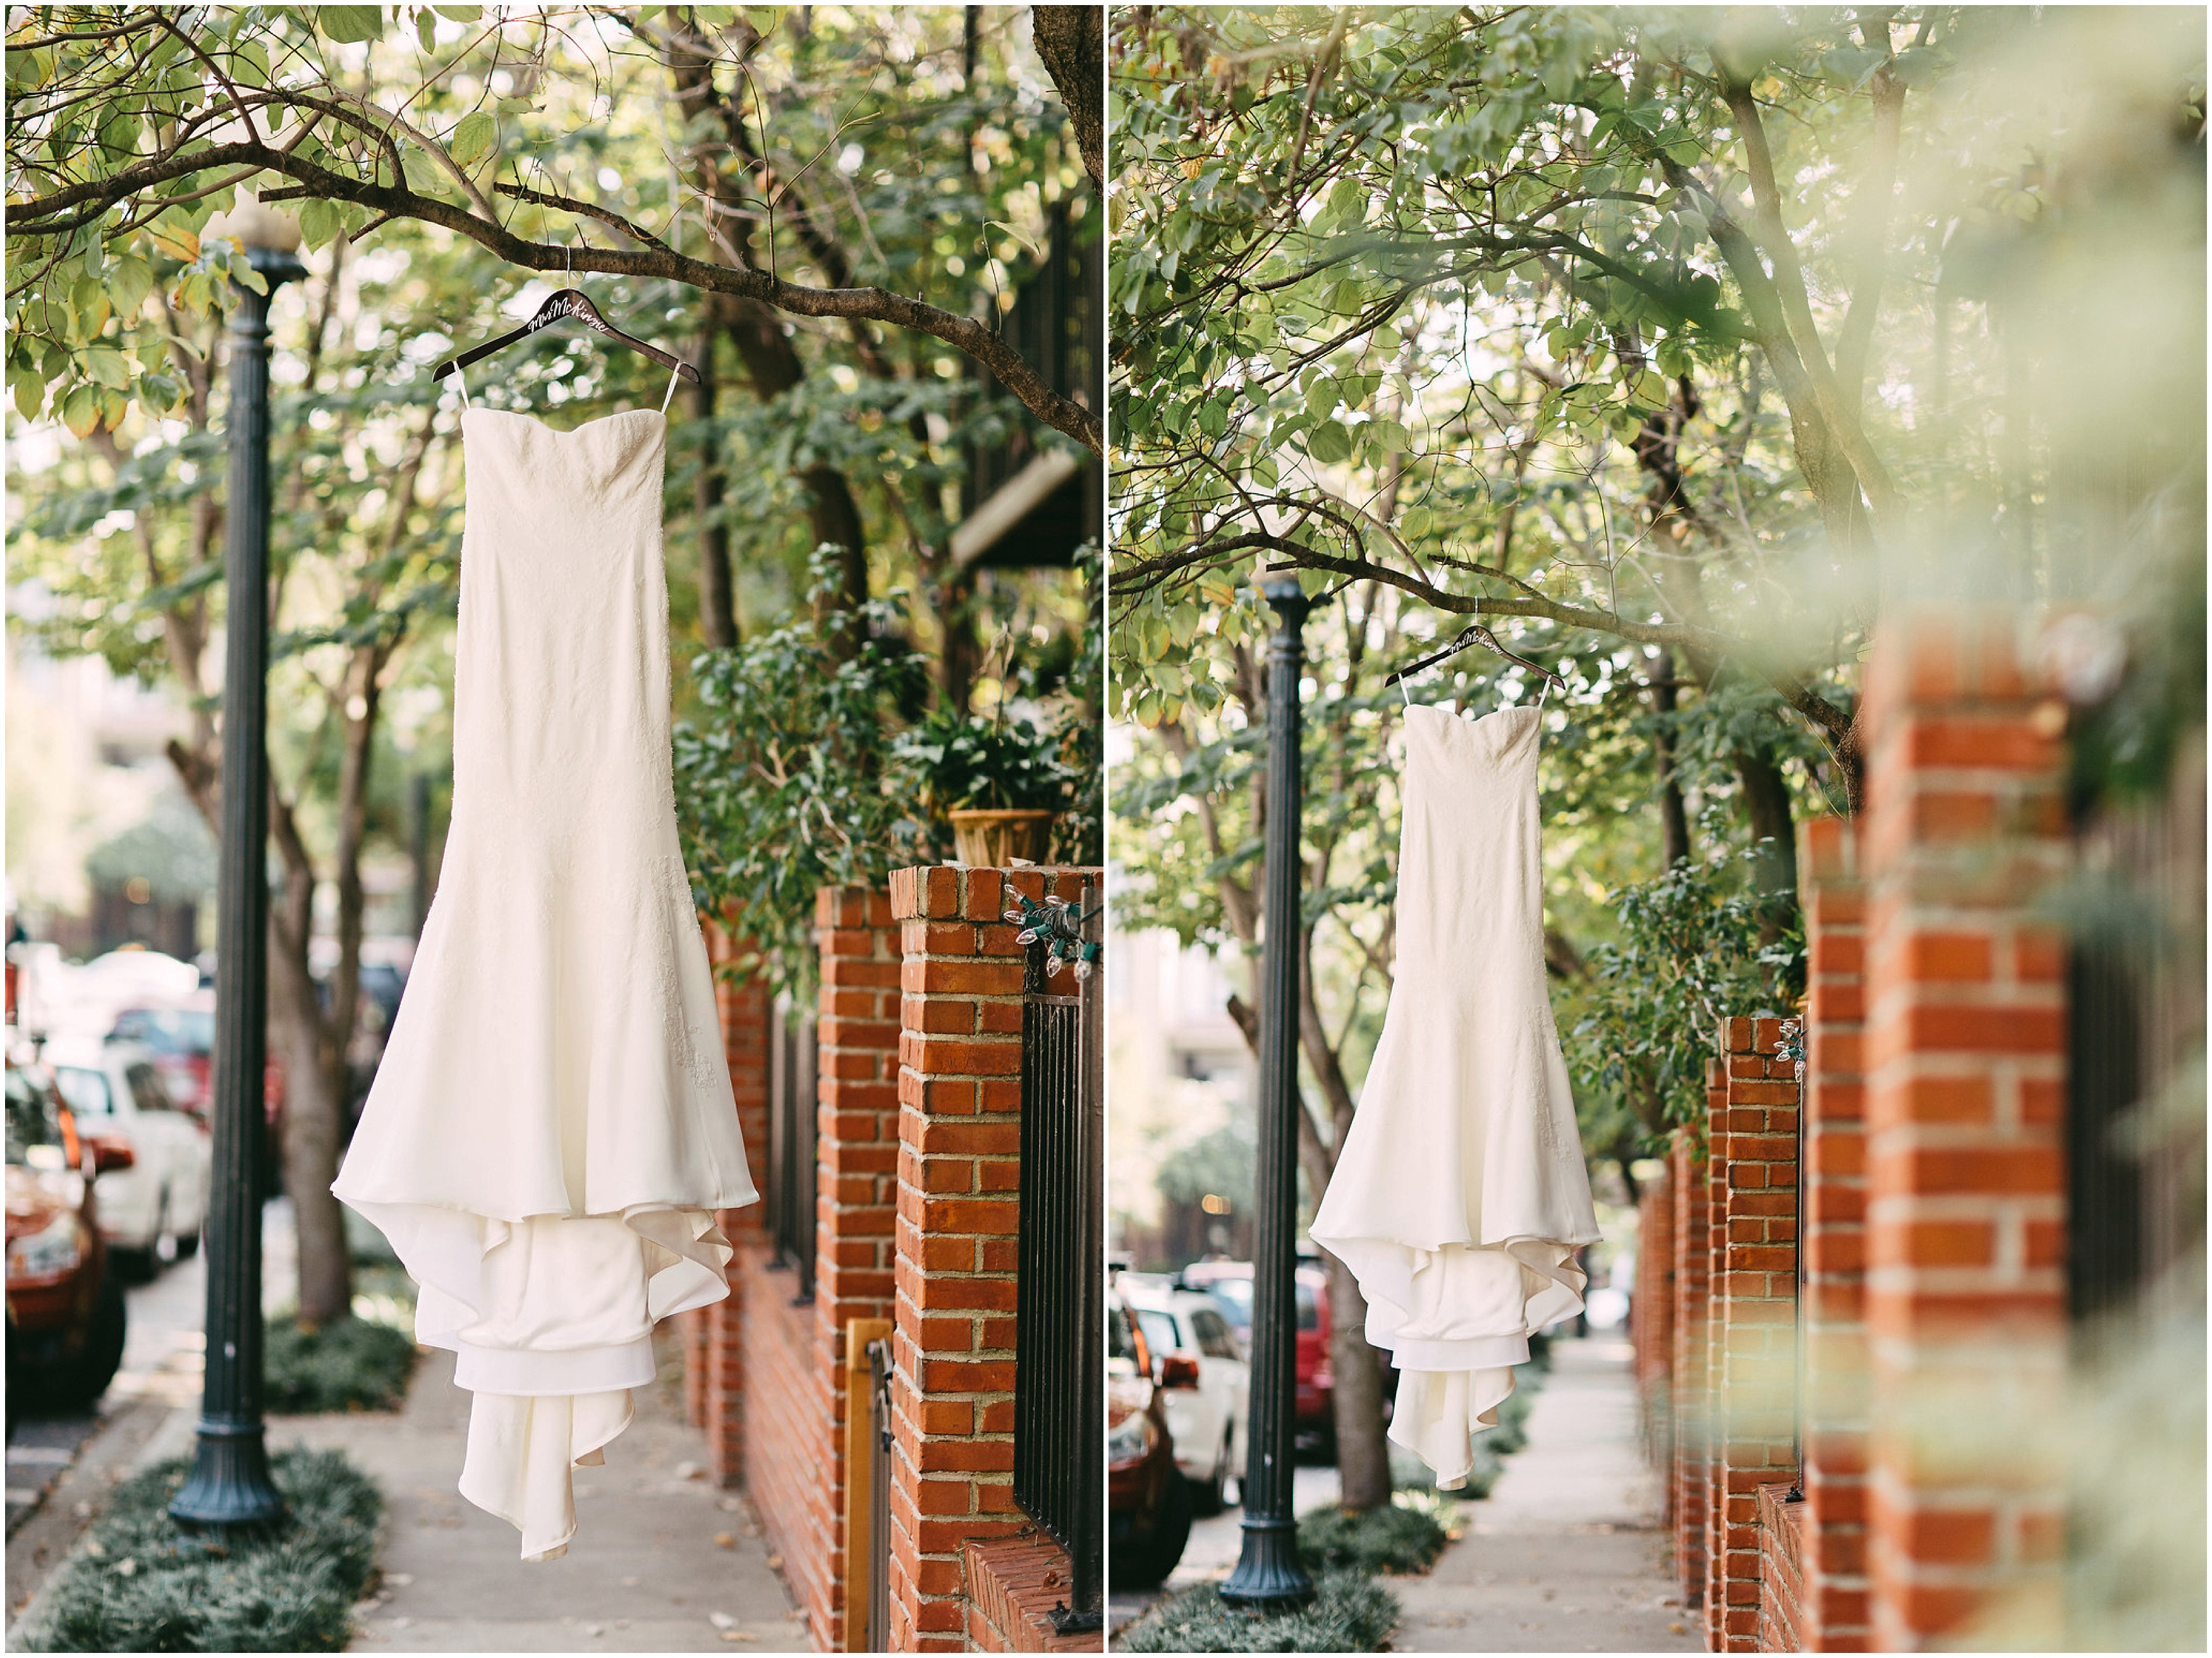 Wedding Photography Memphis: Dixon Gallery And Gardens Wedding- Memphis Wedding